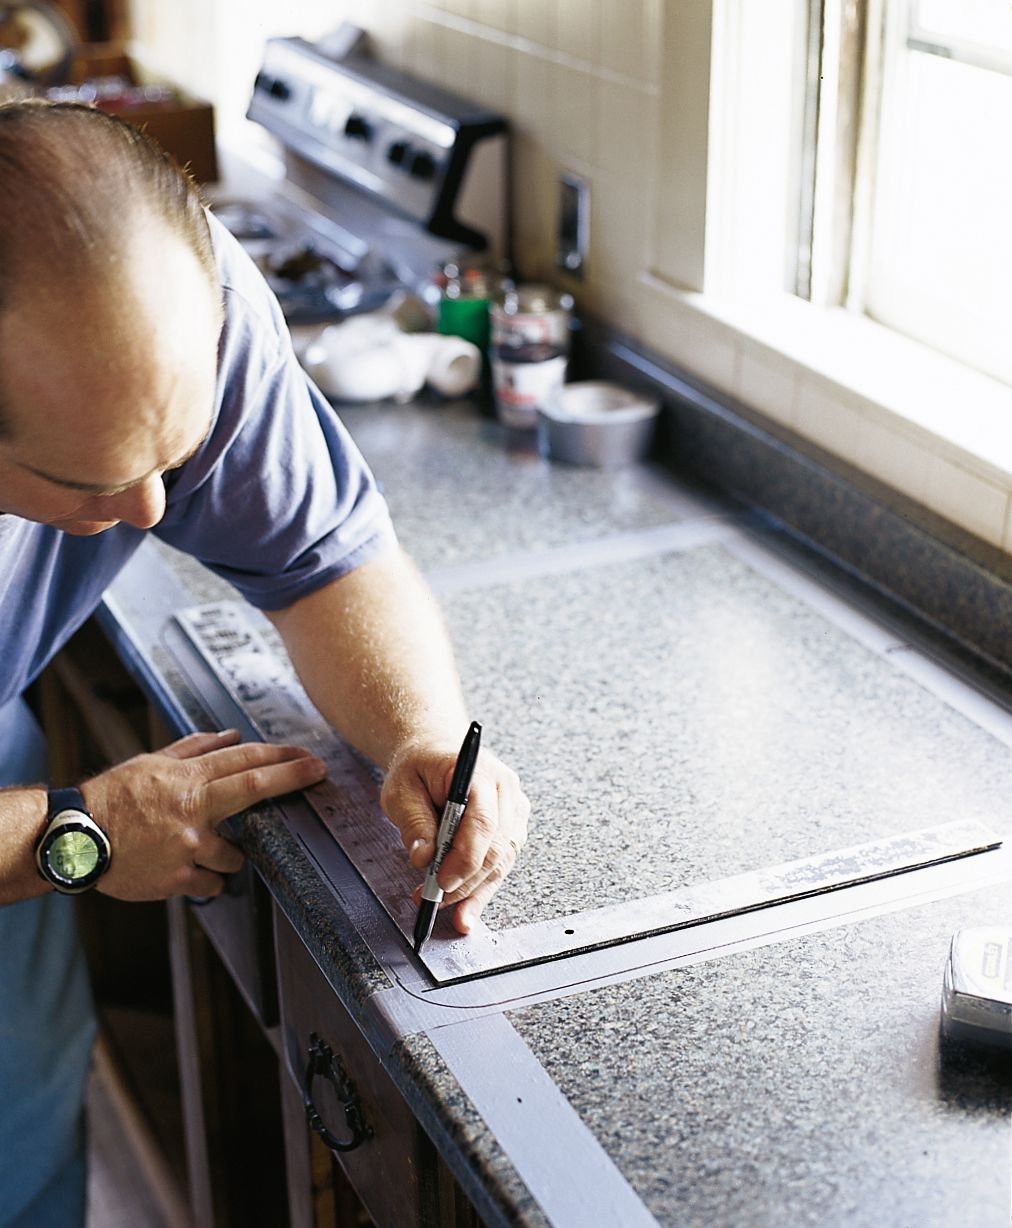 Person marking a counter with a sharpie to prepare for new kitchen sink installation.